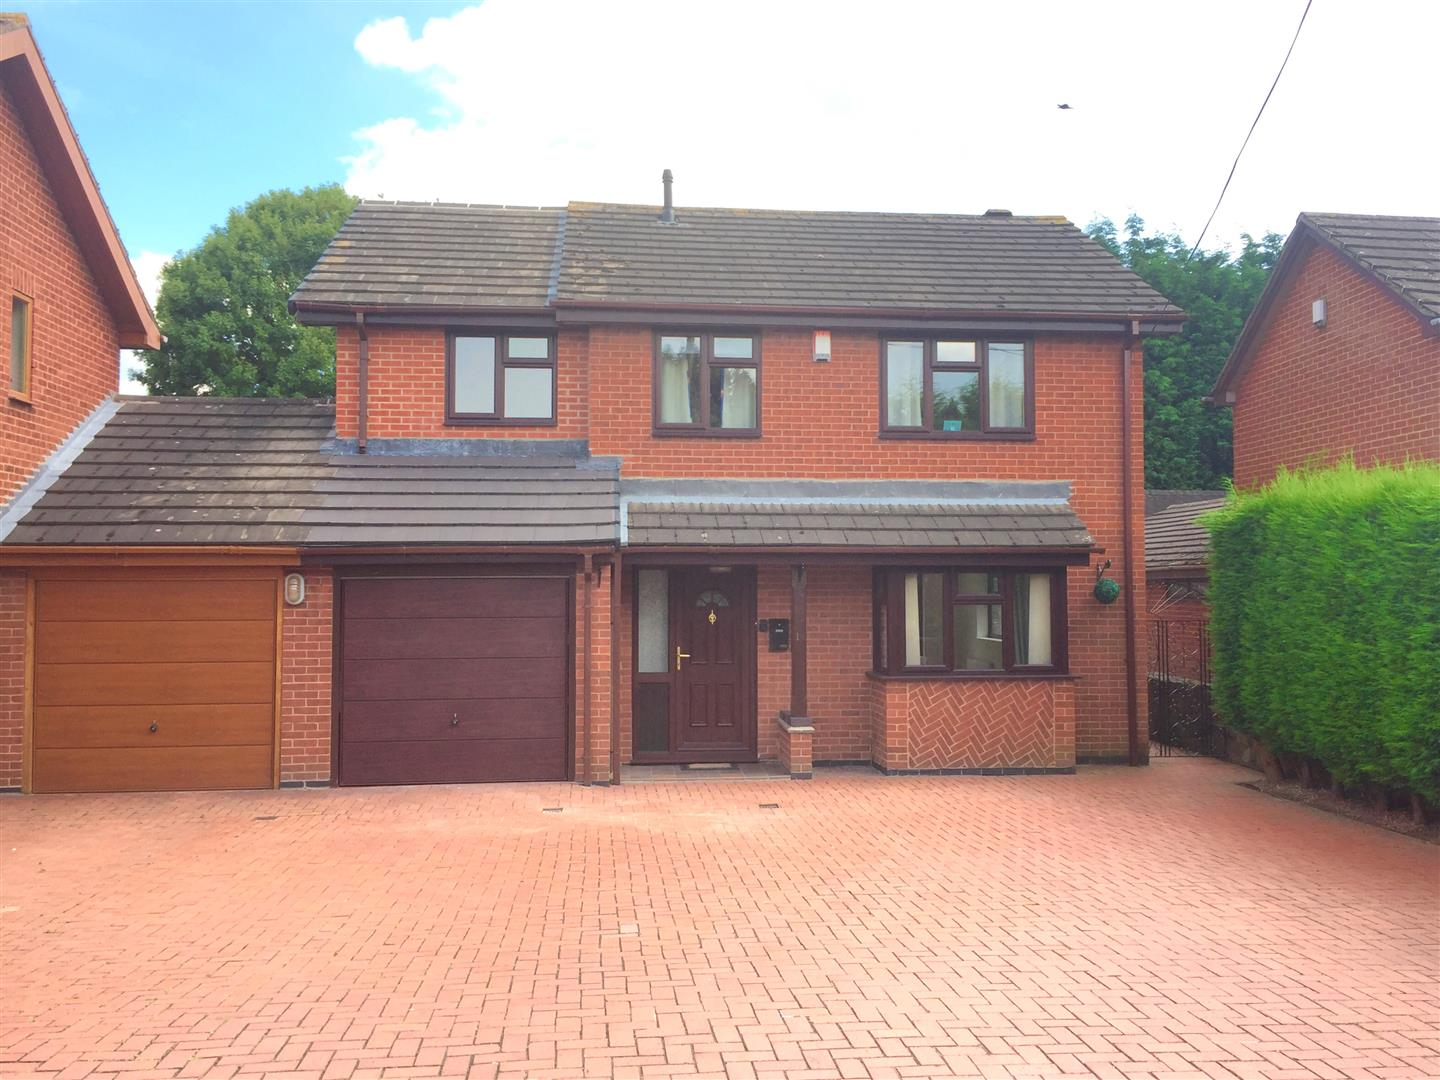 4 Bedrooms Detached House for sale in Dalston Road, Newhall, Swadlincote